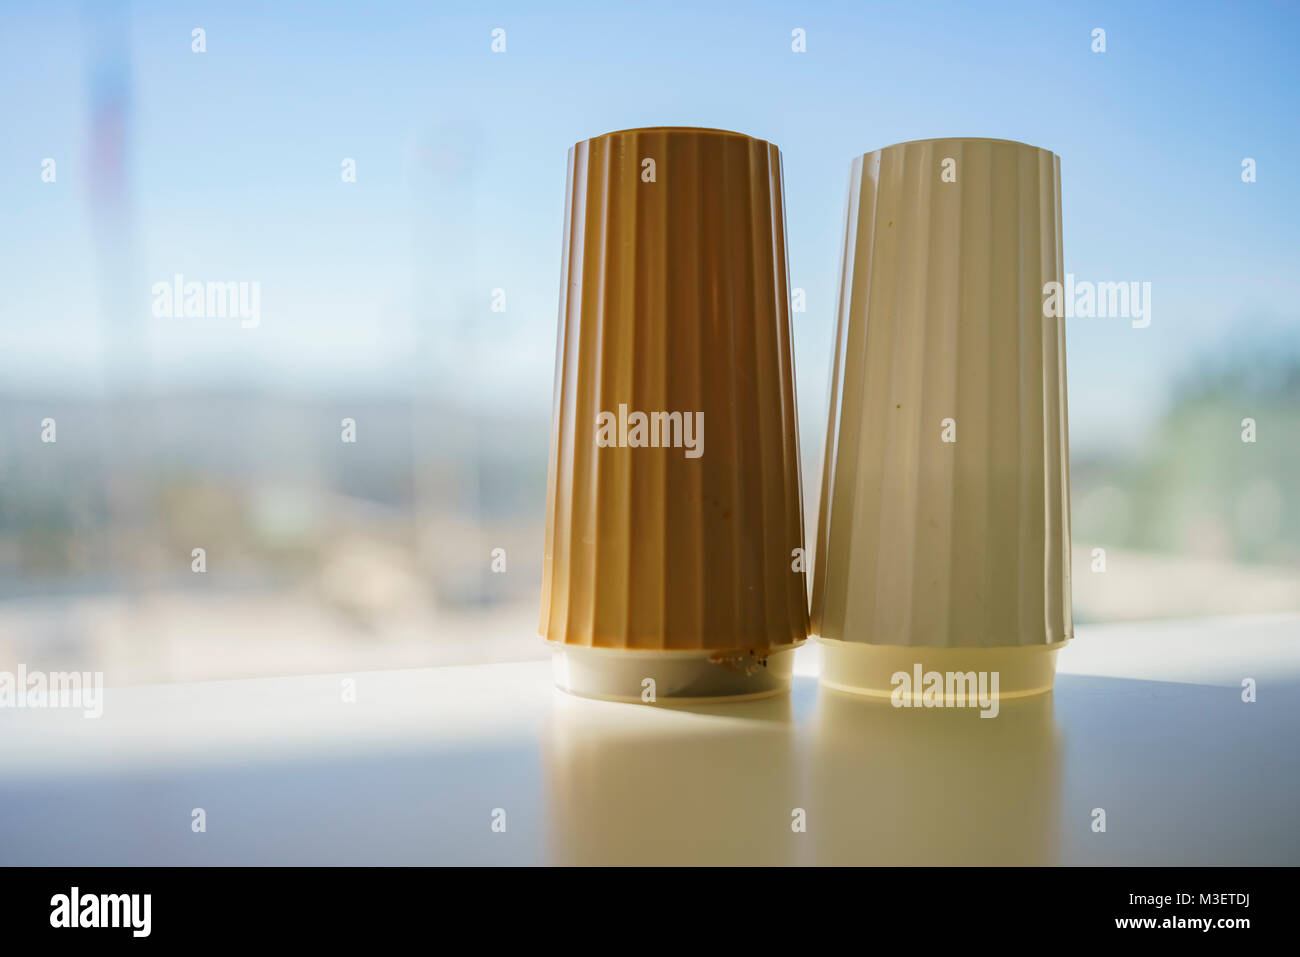 Two Seasoning cans sit on the table, saw at Los Angeles - Stock Image